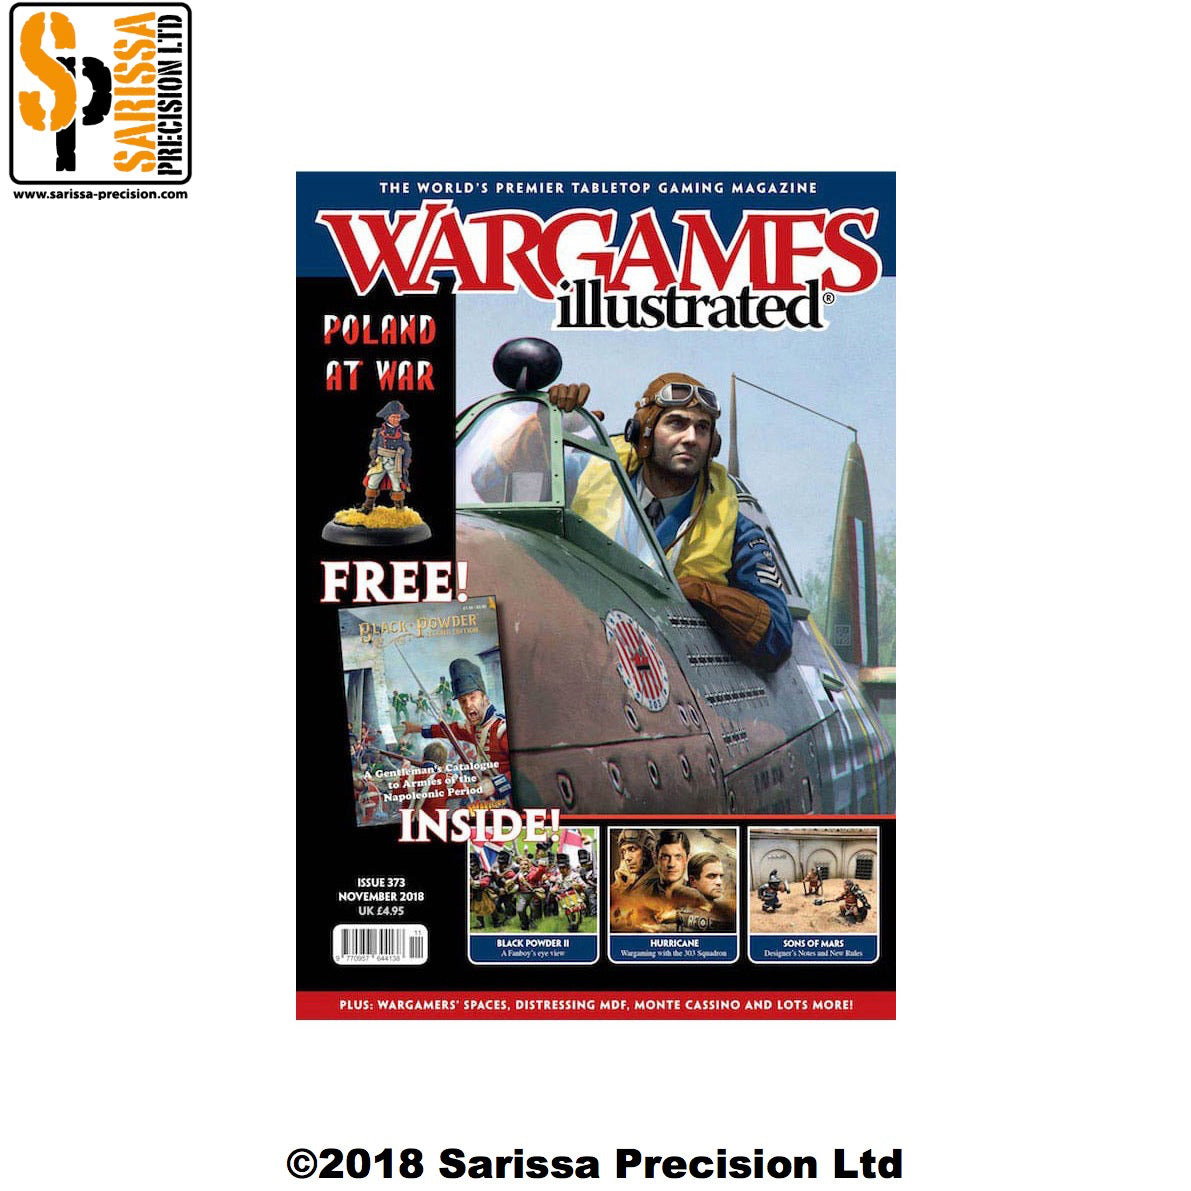 Wargames Illustrated 373 November 2018